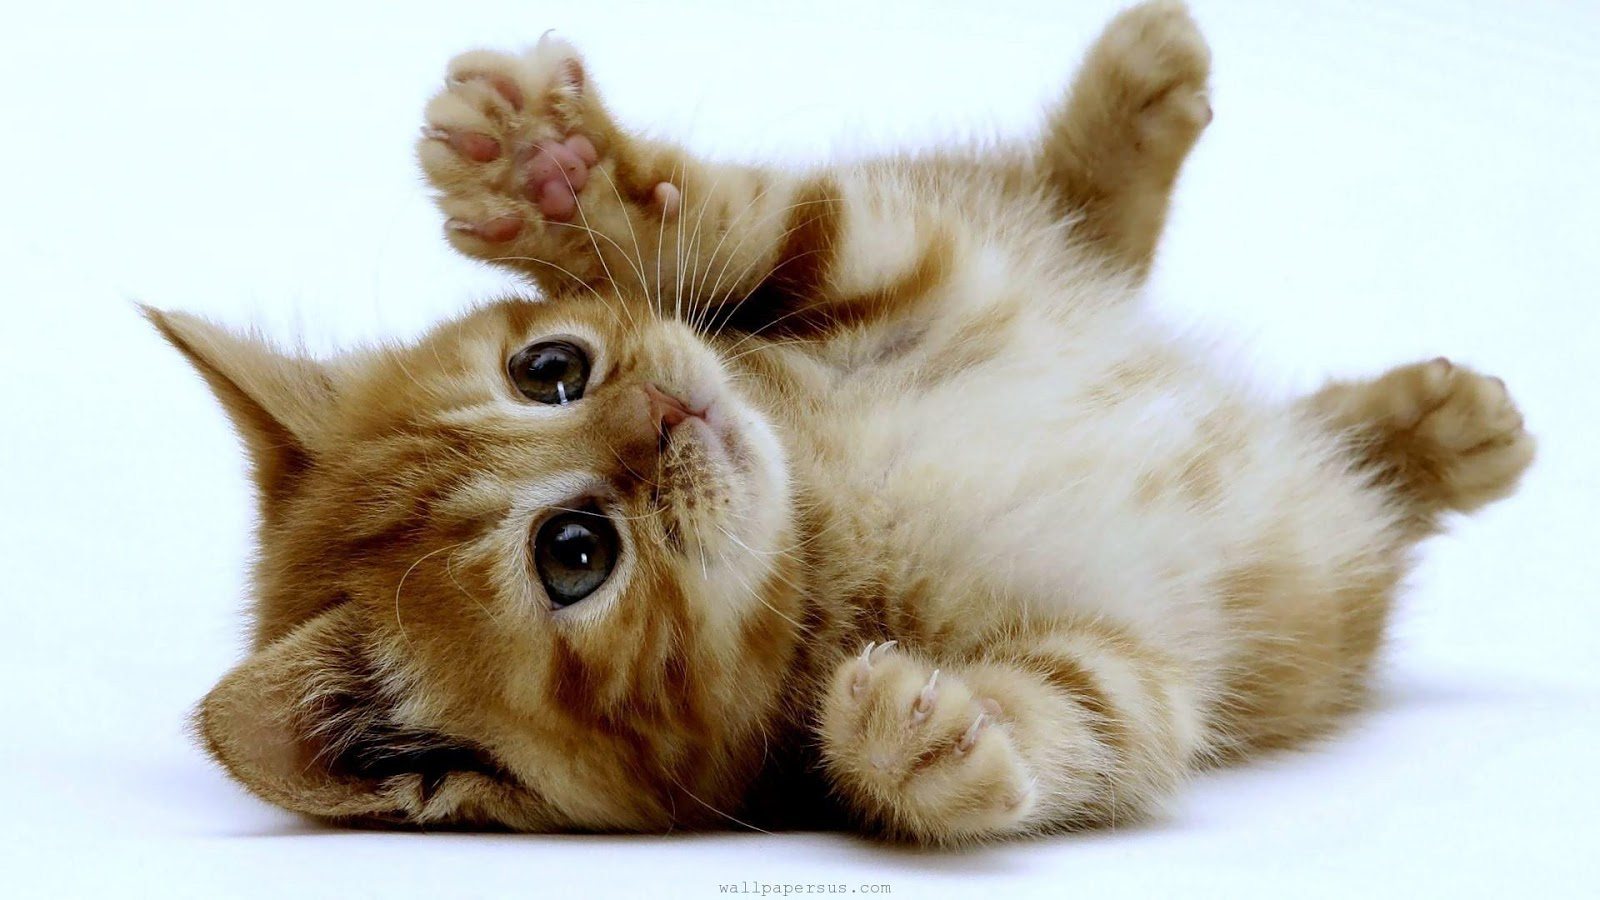 Permalink to 50 Cute Cute Kitten Photos